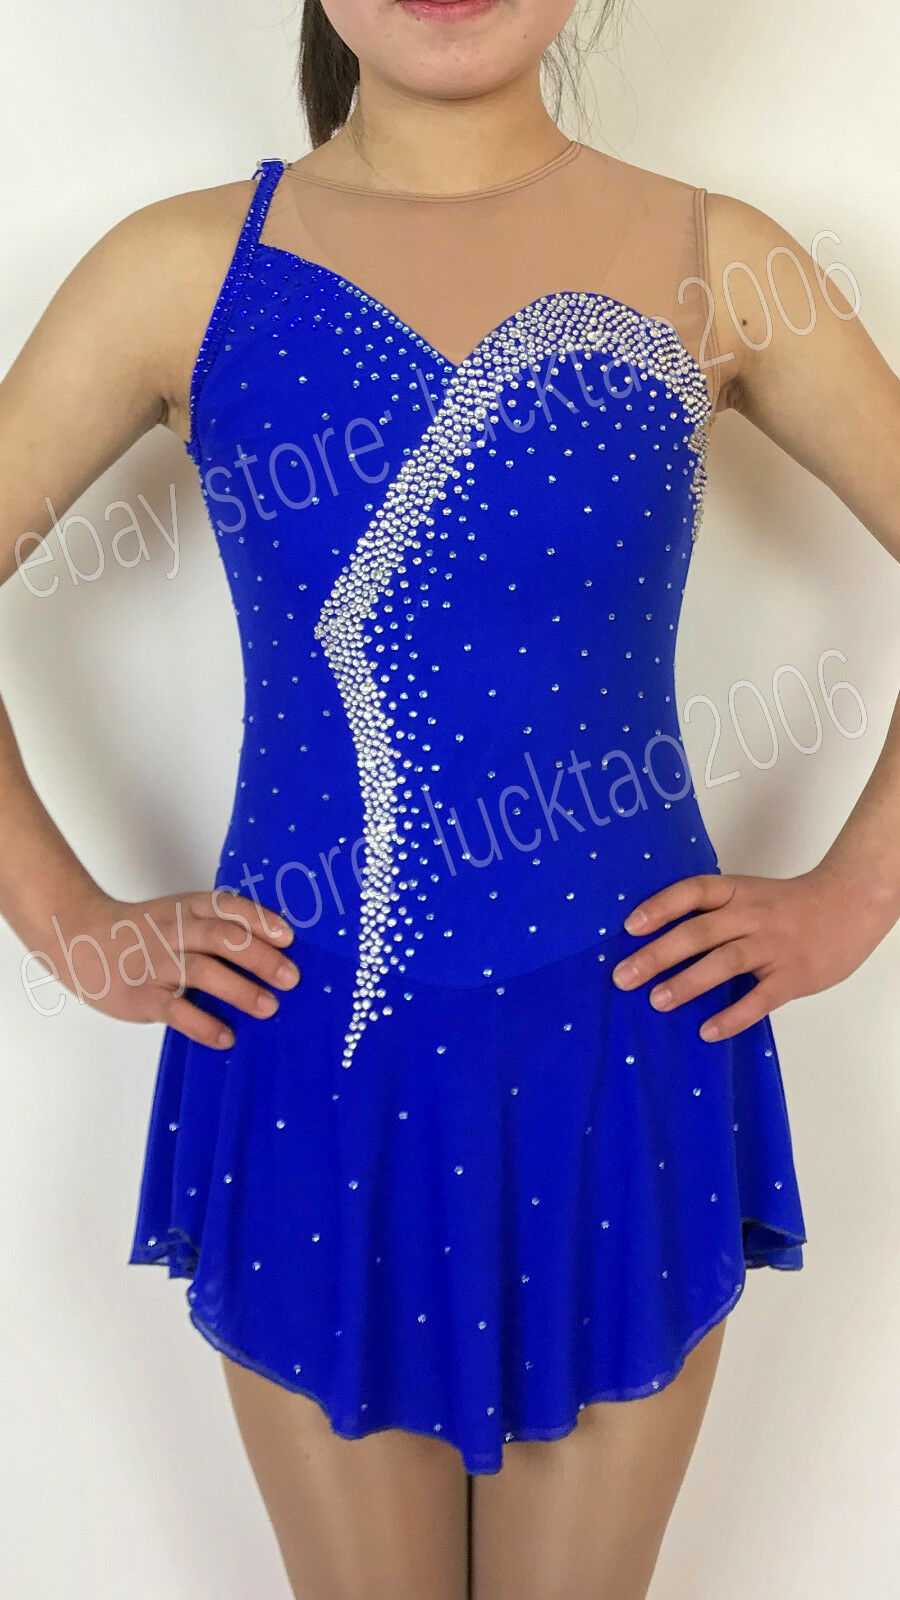 New style Gymnastics Dance Figure skating Ice Skating Dress Sparkly S8802-2